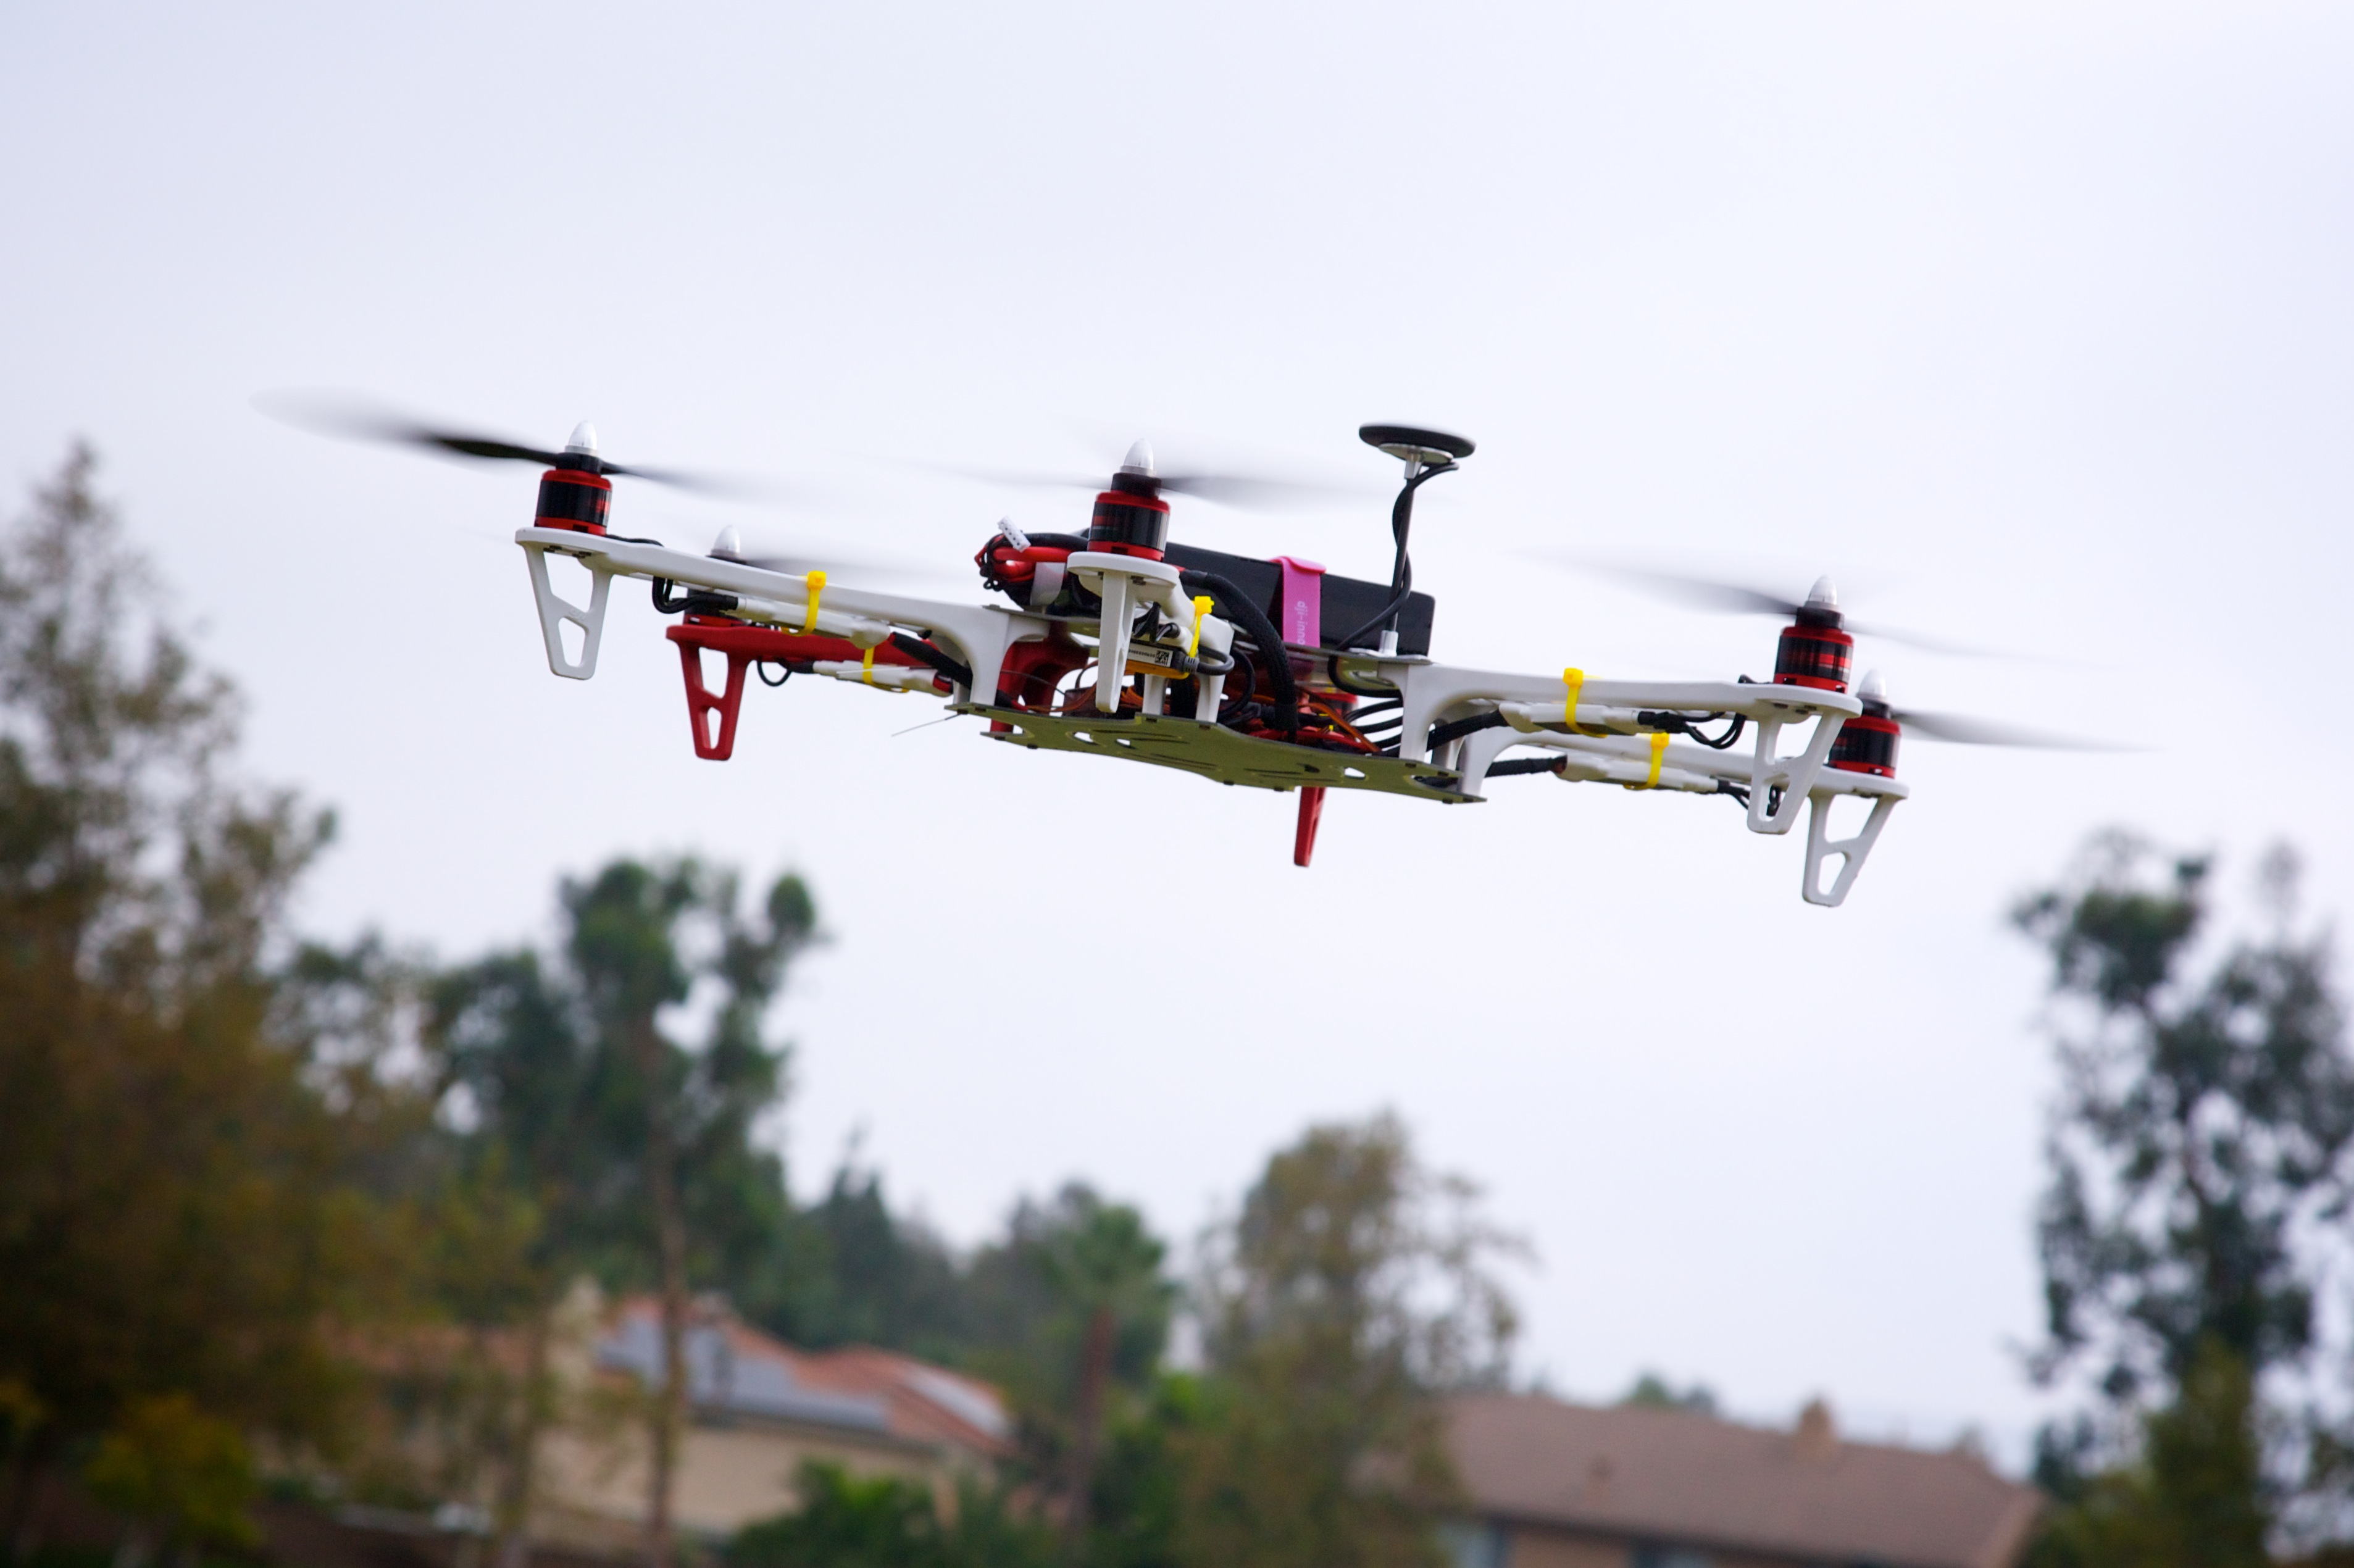 In a first of its kind, drone survey to acquire land in Indian state Punjab